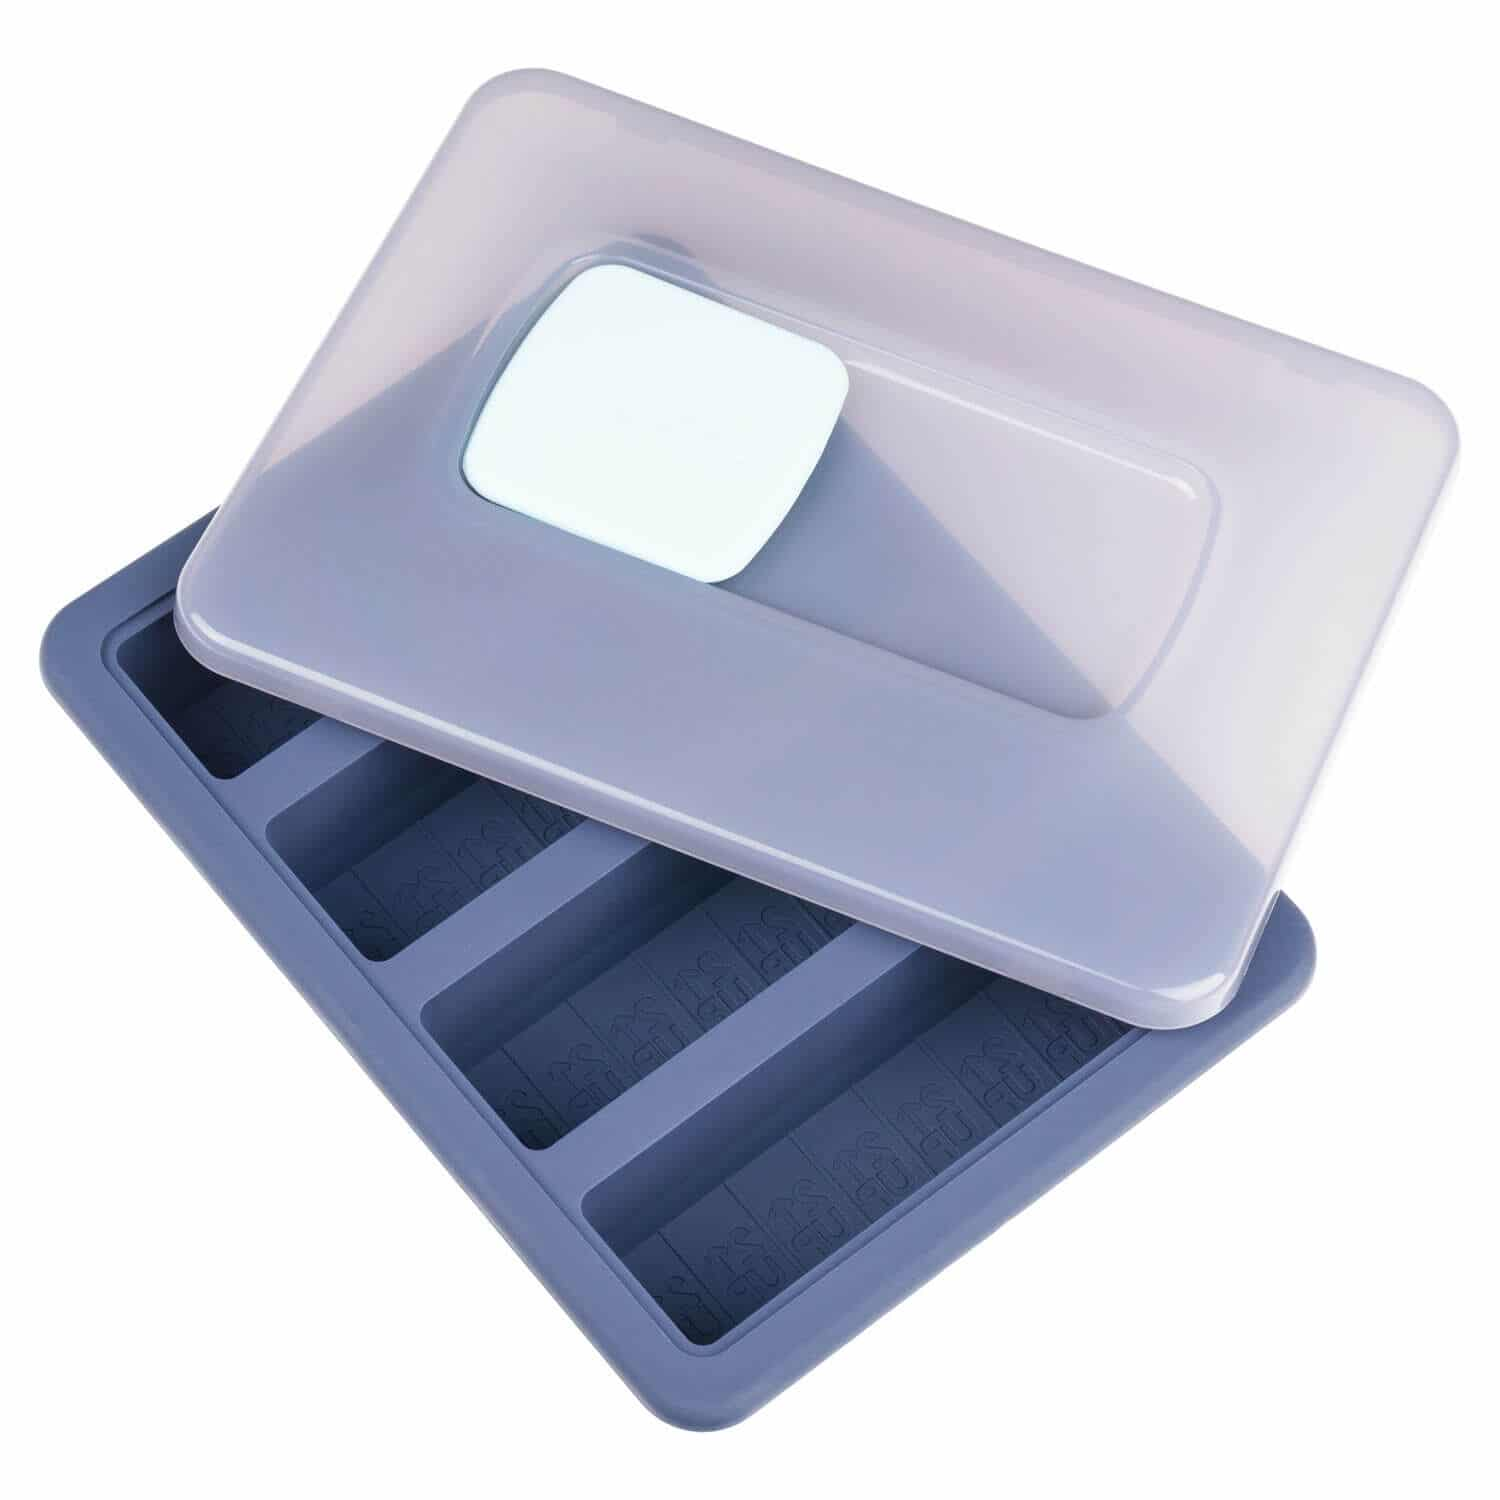 Magical Butter 21UP Tray